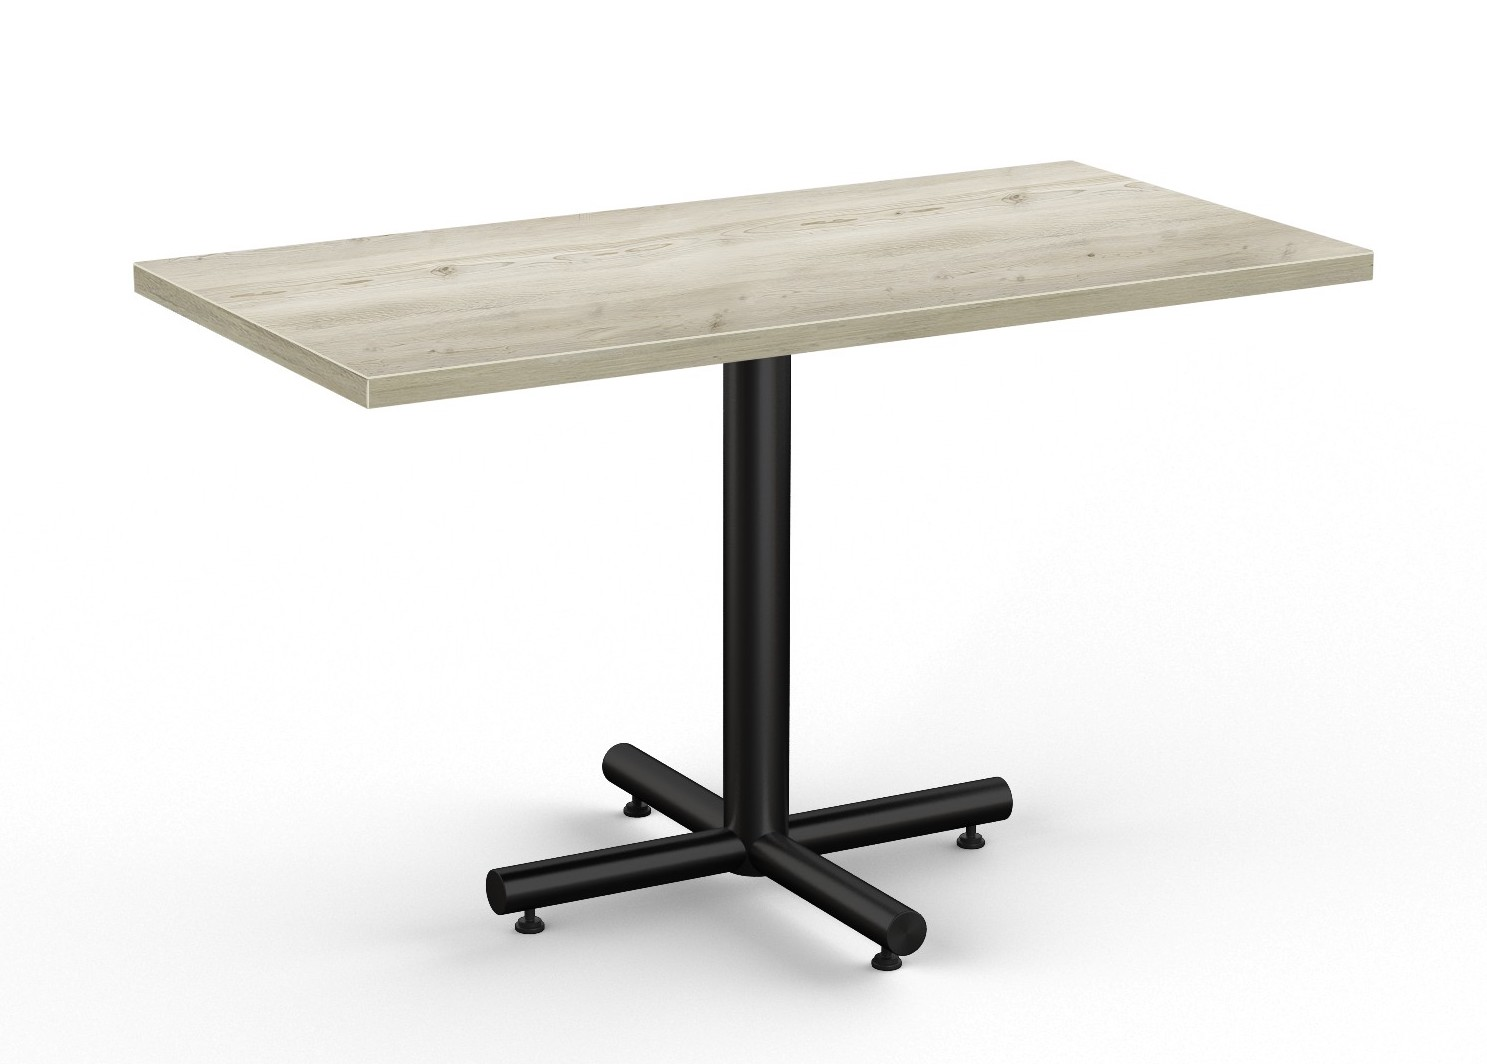 aged driftwood finished classix rectangular cafe table